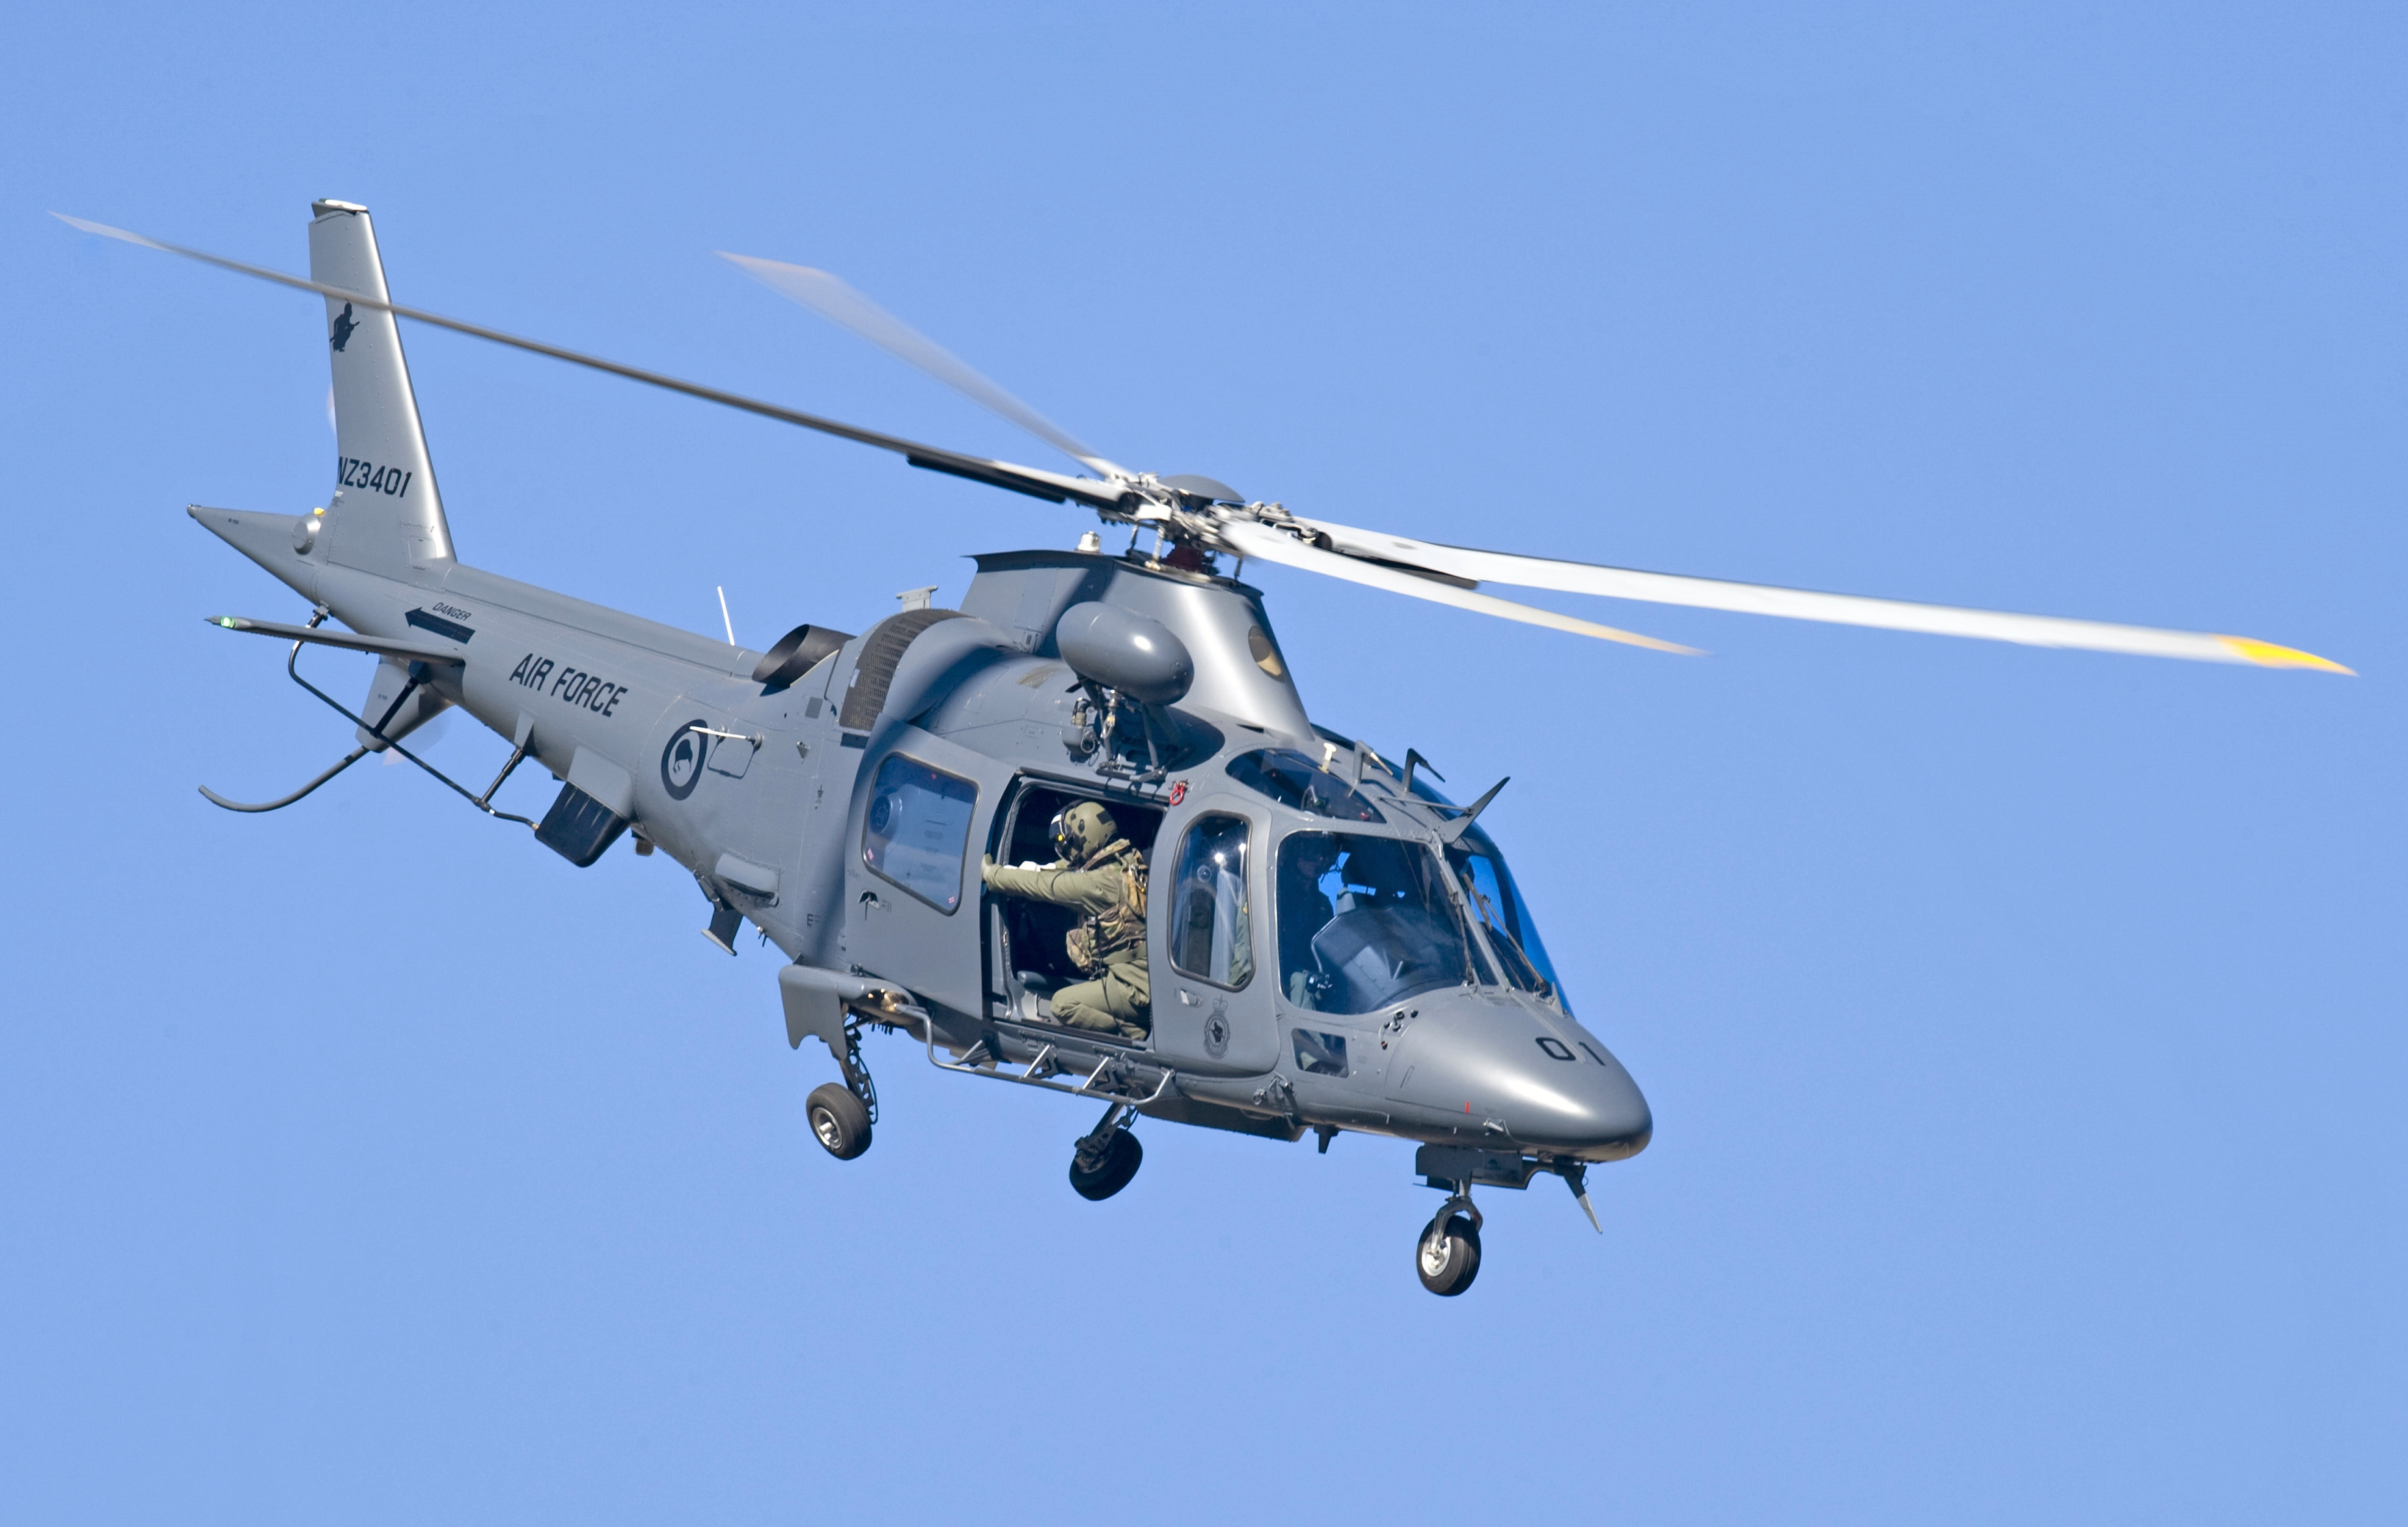 Description RNZAF A109 helicopter at the 2012 Wanaka Airshow.jpg